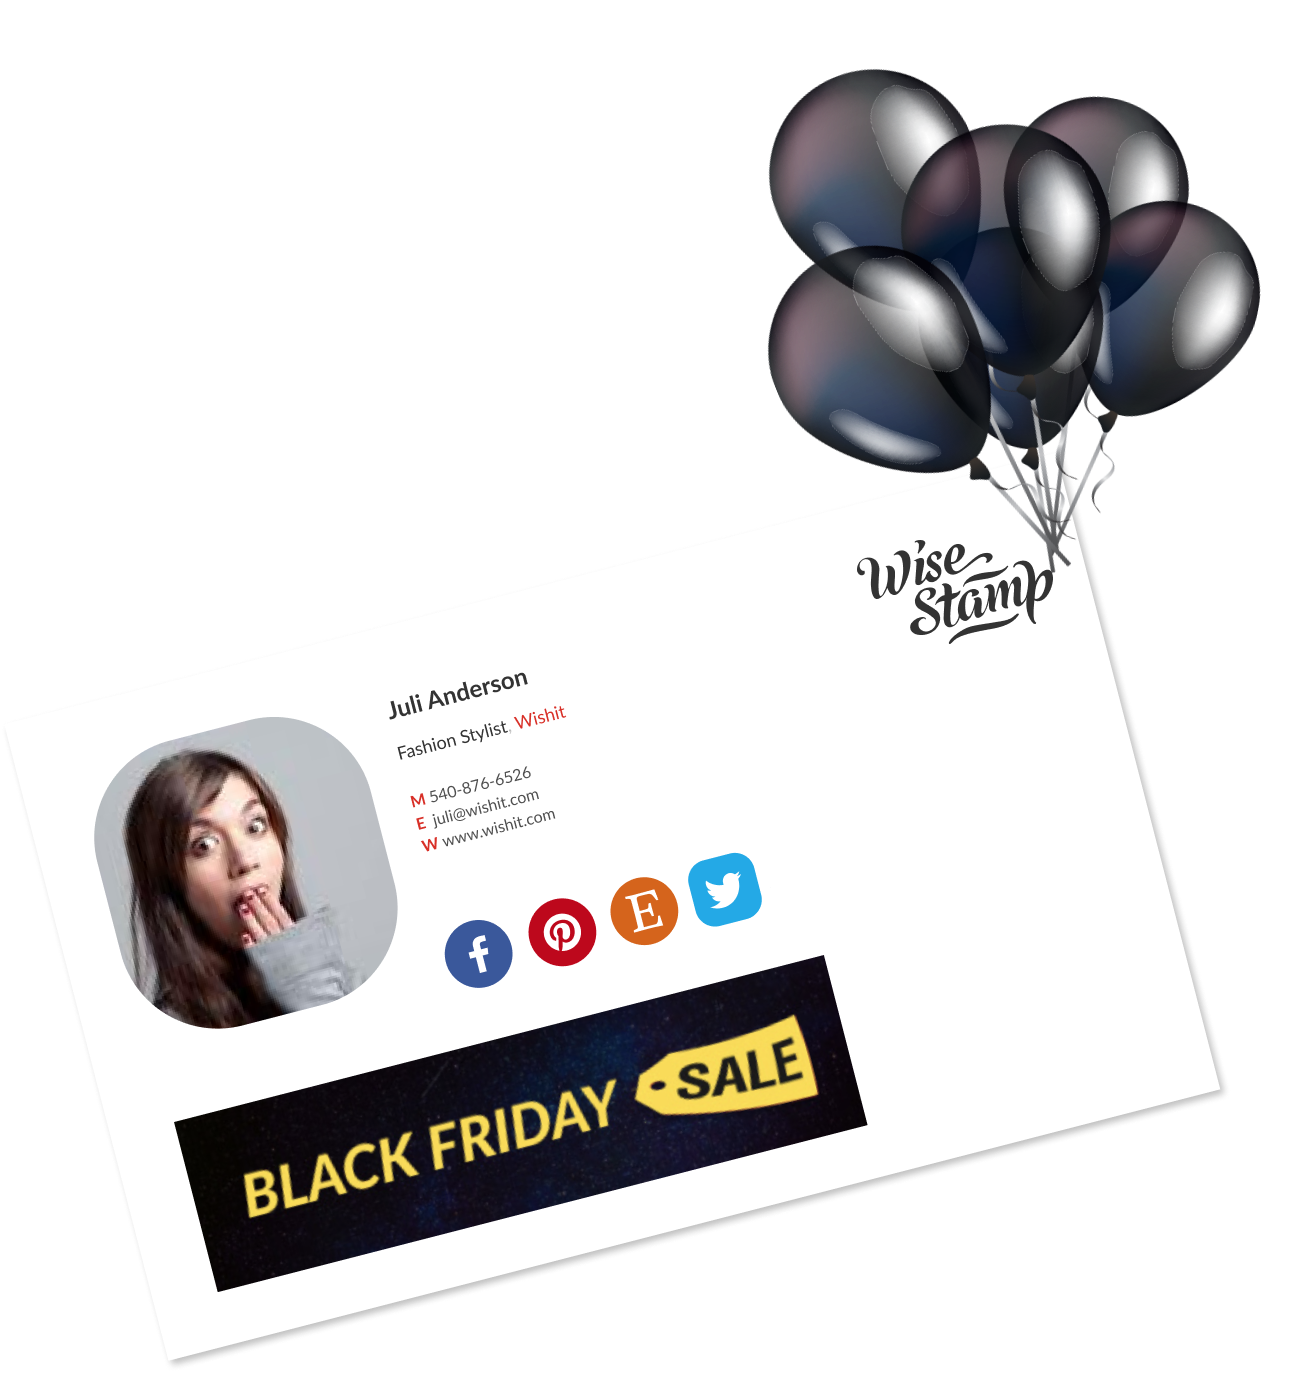 black friday sales banner for email signature